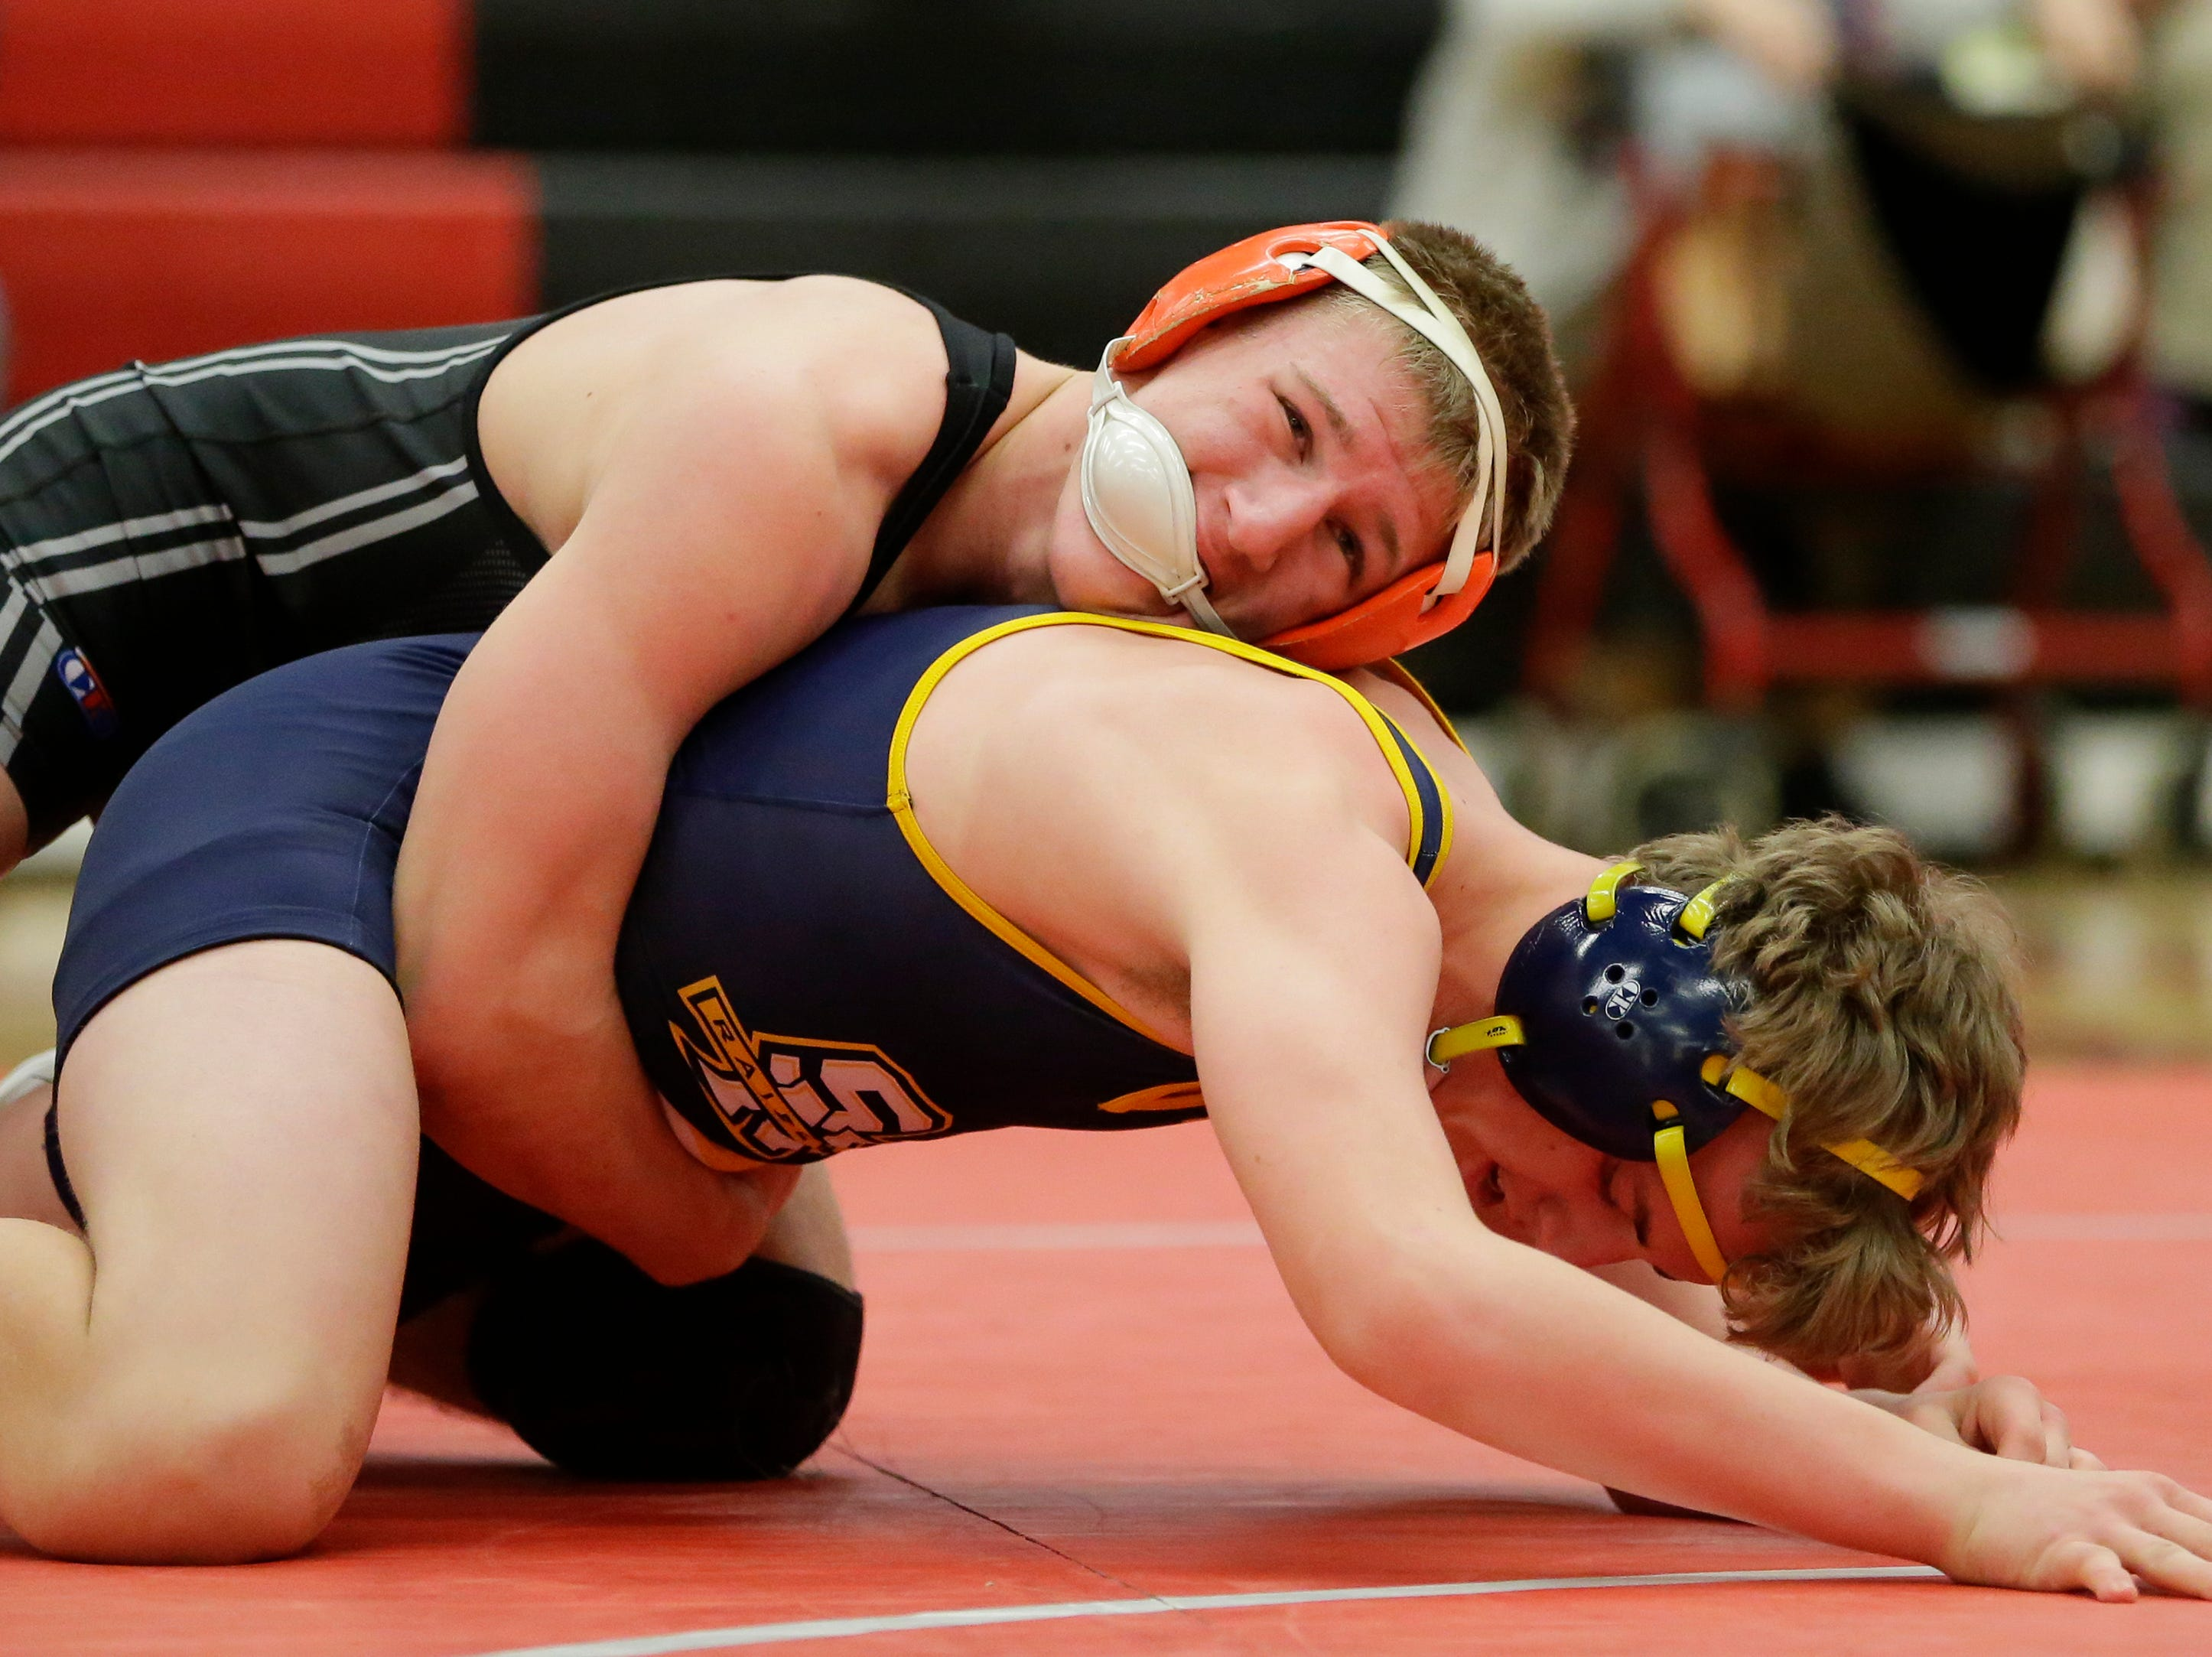 Plymouth's Josh Koll wrestles Sheboygan North's Kade Allen in the 160 weight class during the WIAA D1 Regionals at Manitowoc Lincoln High School Saturday, February 9, 2019, in Manitowoc, Wis. Joshua Clark/USA TODAY NETWORK-Wisconsin